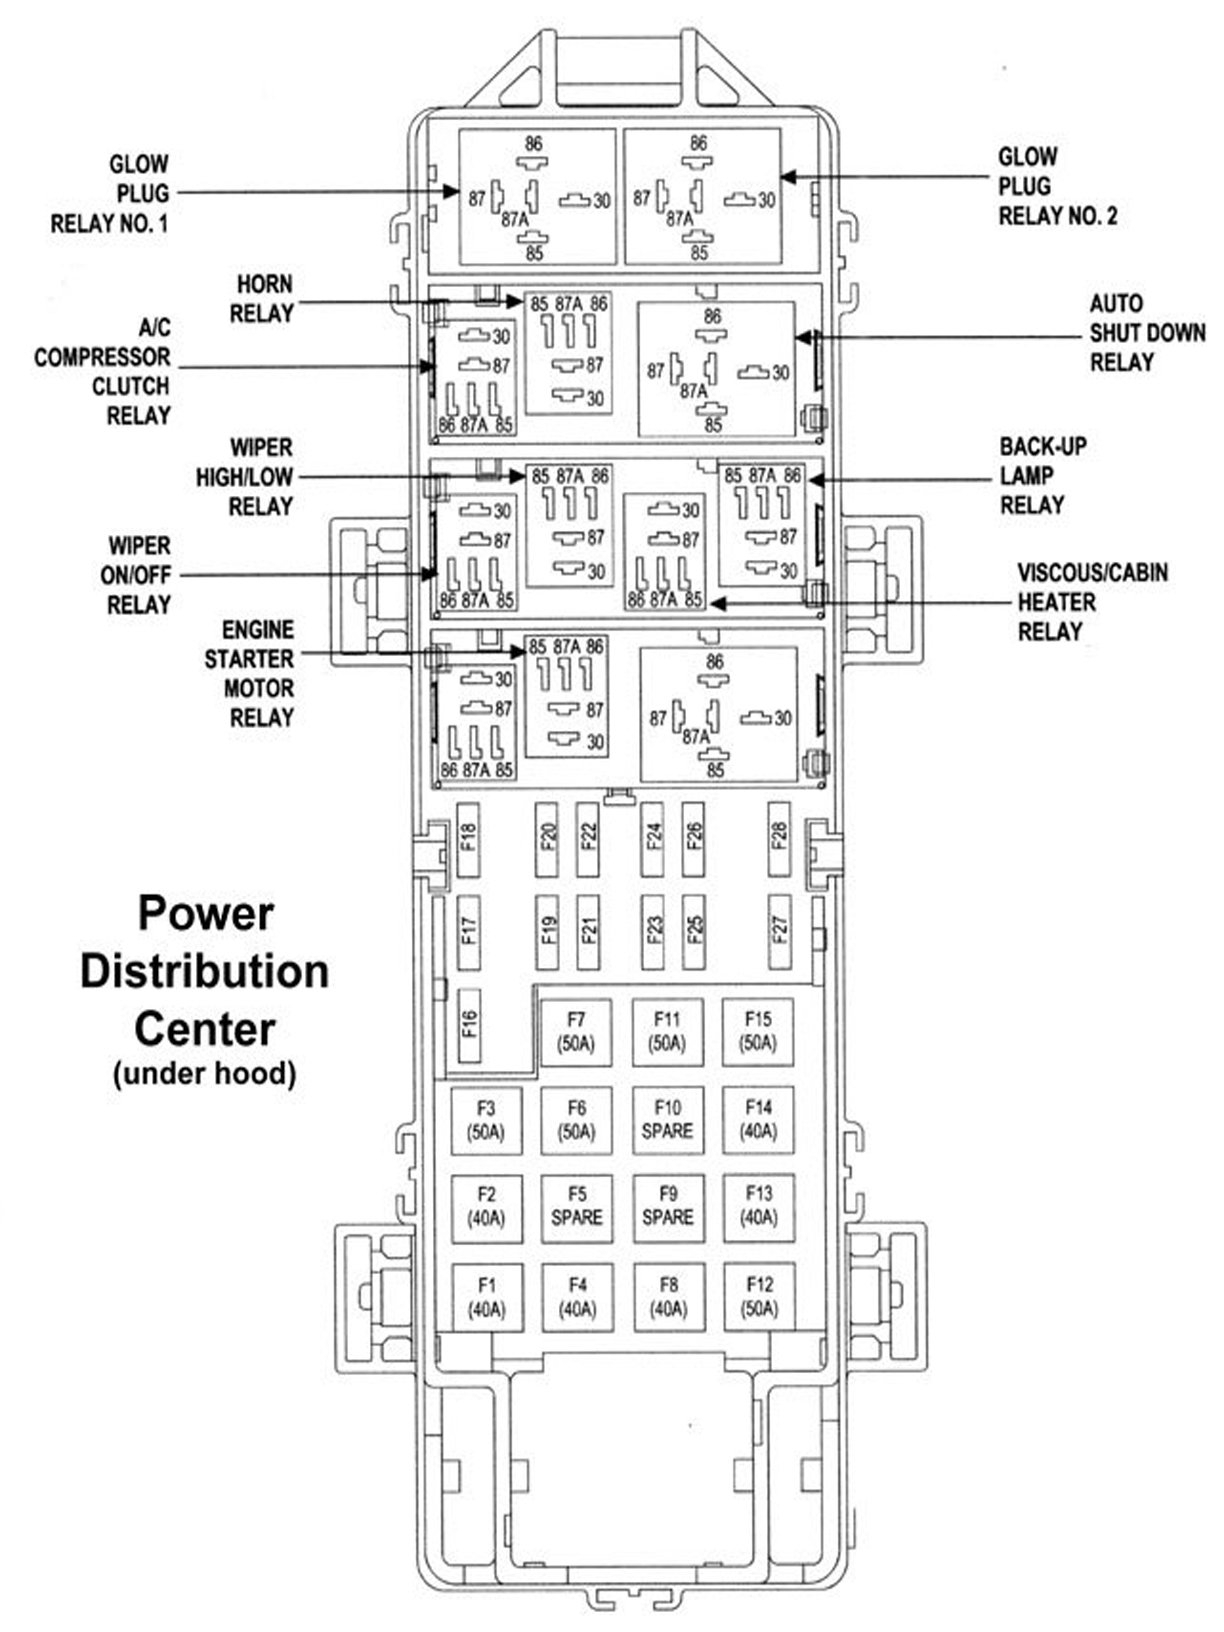 jeep grand cherokee wj 1999 to 2004 fuse box diagram cherokeeforum intended for 1998 jeep grand cherokee parts diagram jeep grand cherokee wj 1999 to 2004 fuse box diagram fuse box for 1998 jeep cherokee at fashall.co